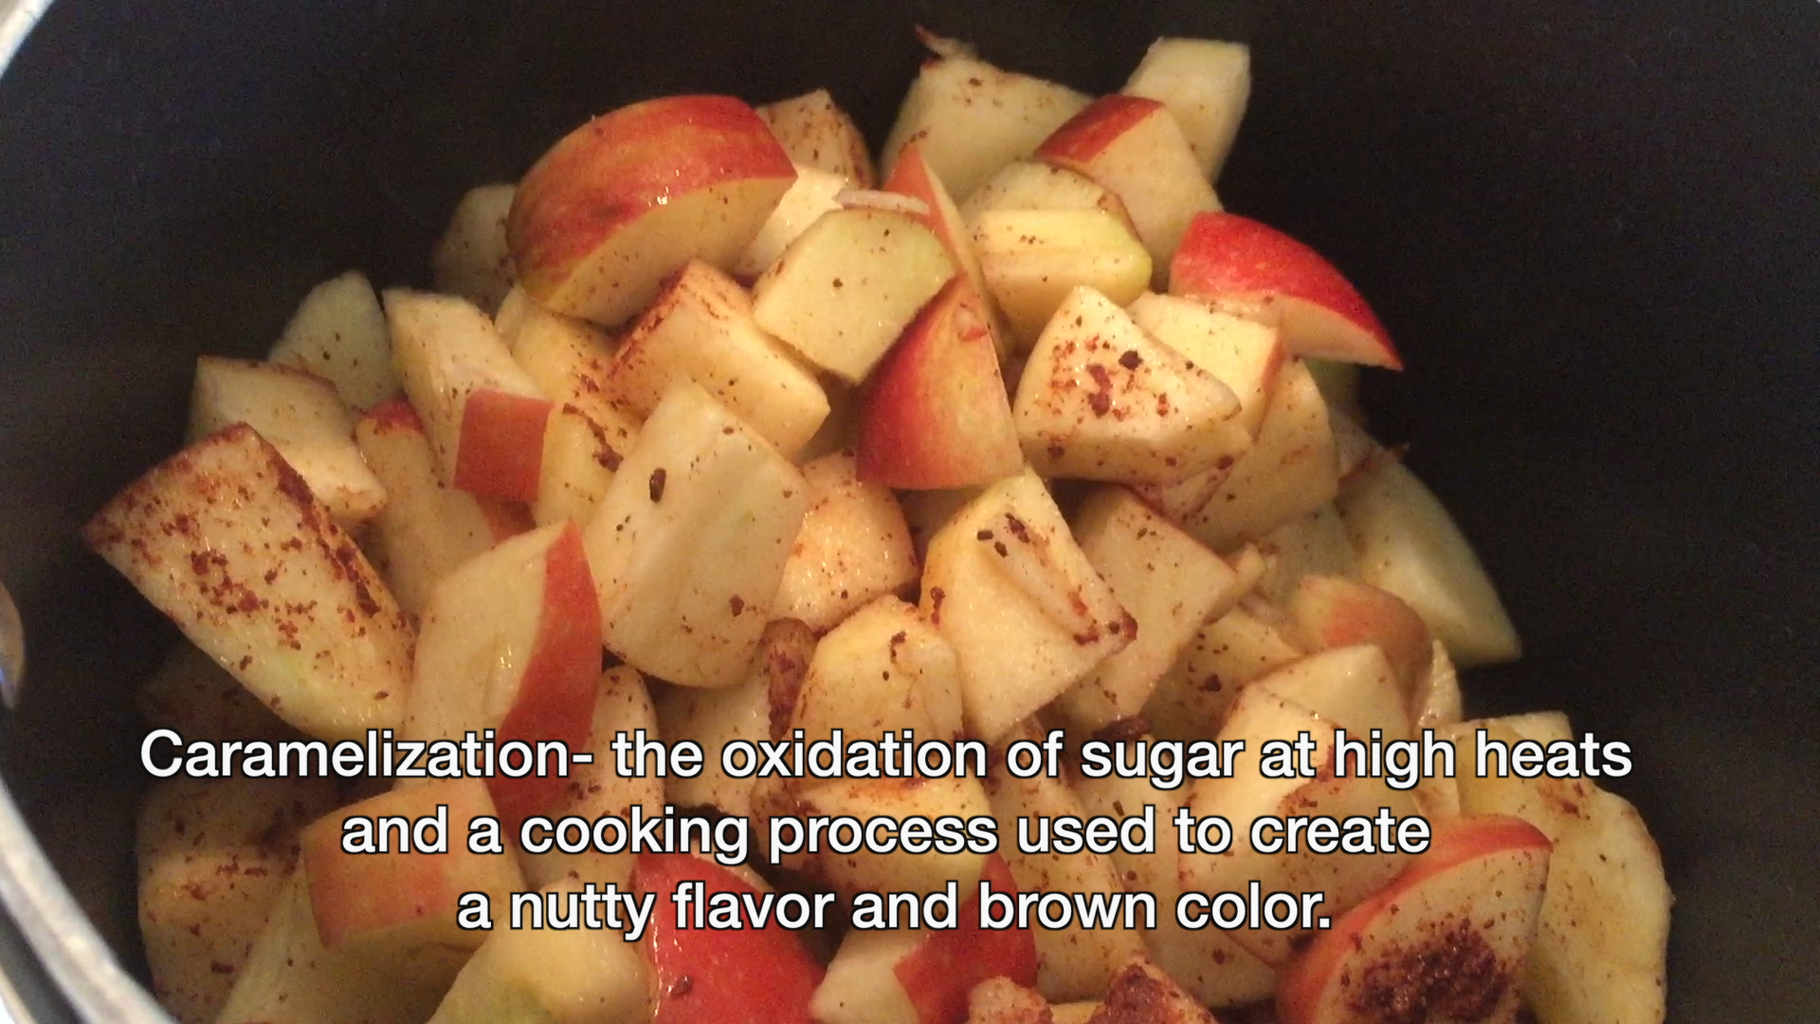 Cook Your Apples